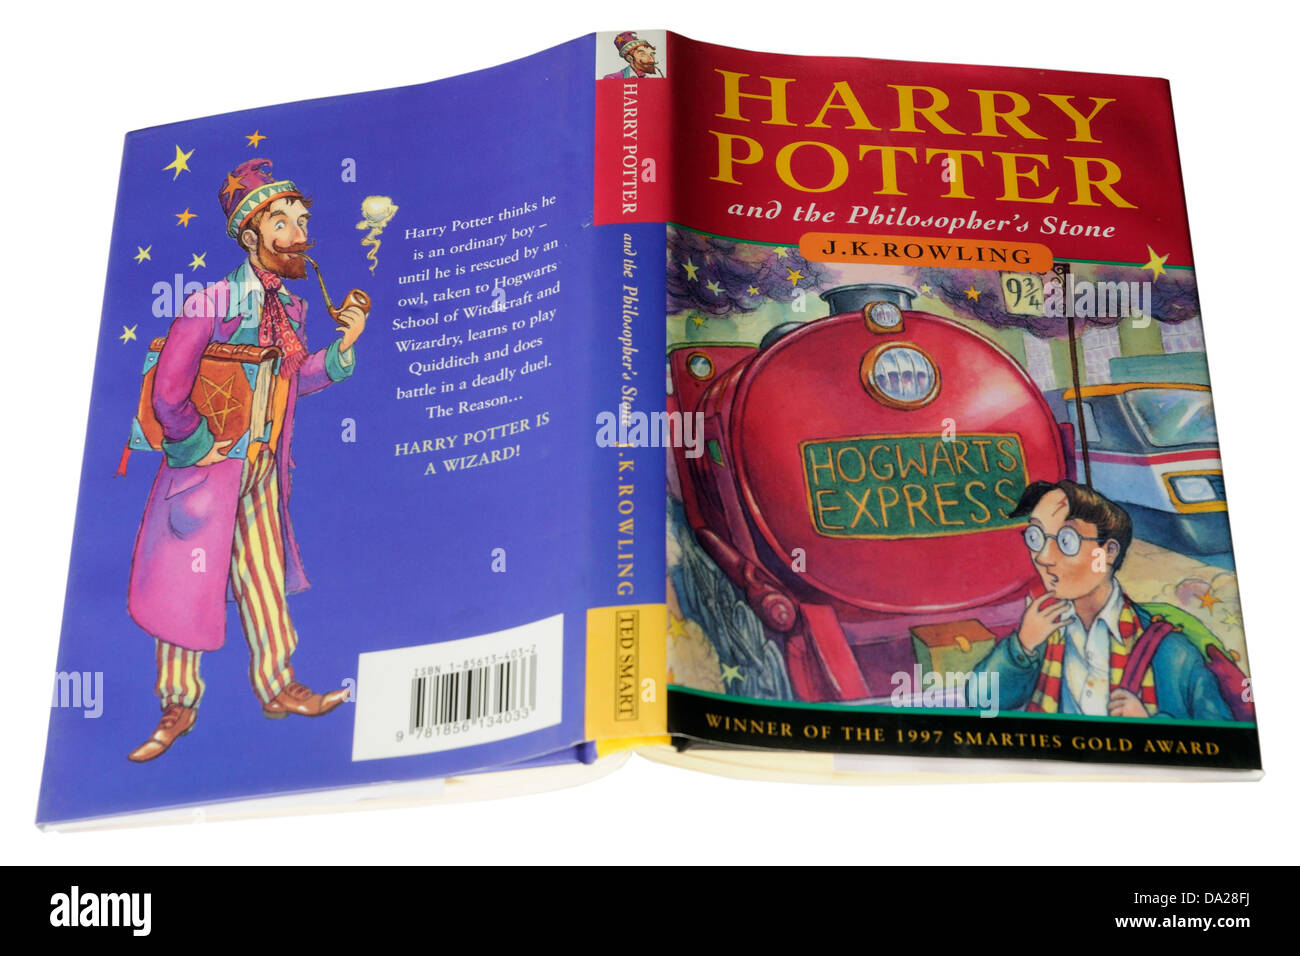 The 1st Harry Potter book Harry Potter and the Philosopher's Stone - Stock Image